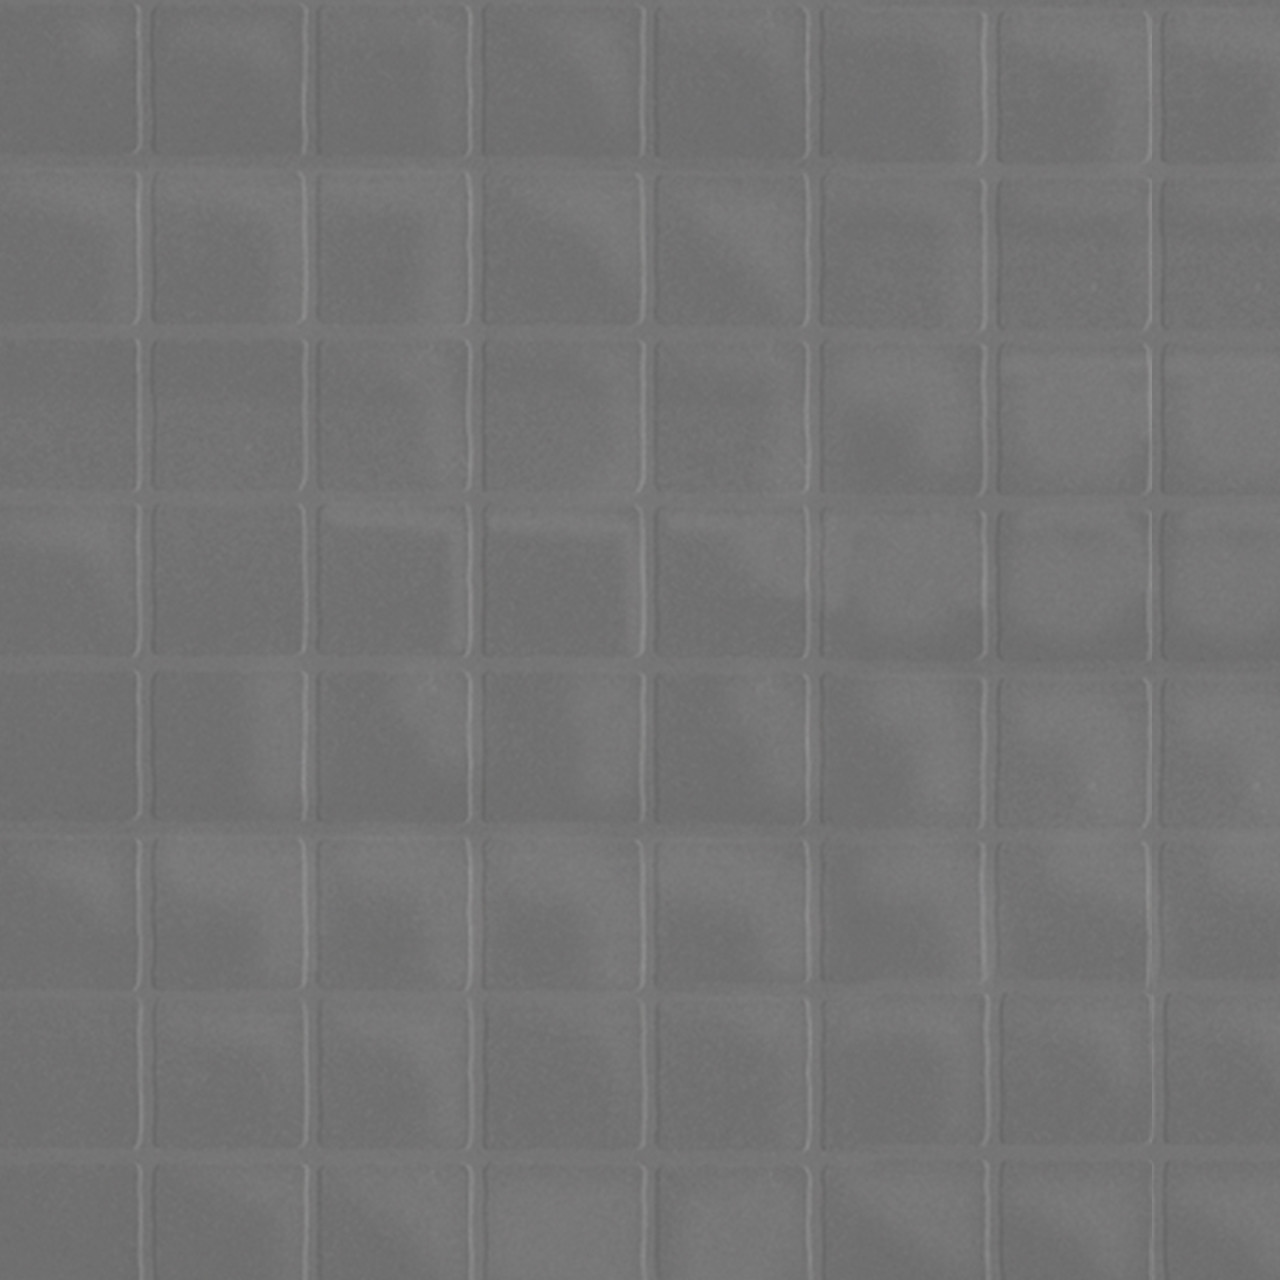 Multipanel Graphite Embossed Tile 2440mm x 1220mm Bathroom Wall Panel